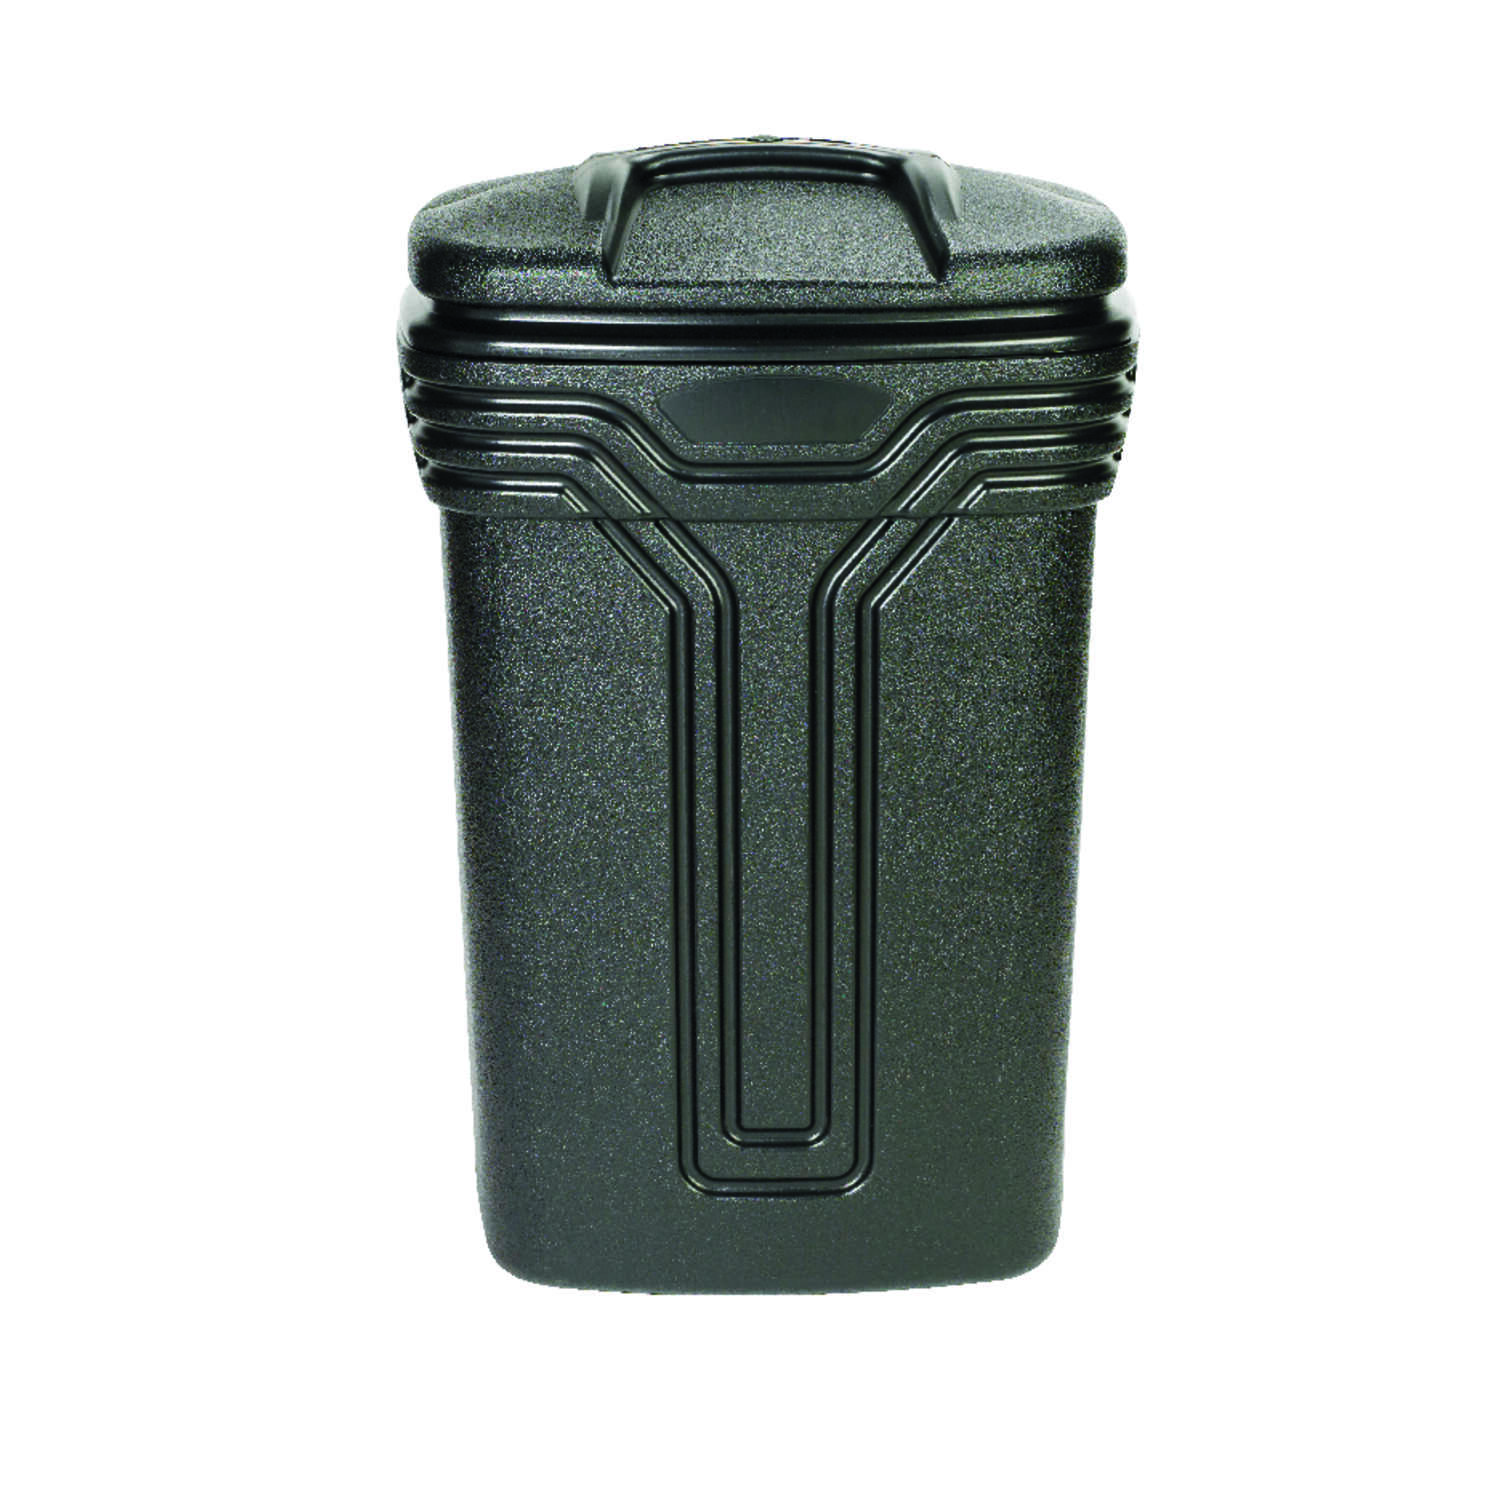 semco 45 gal plastic garbage can ace hardware